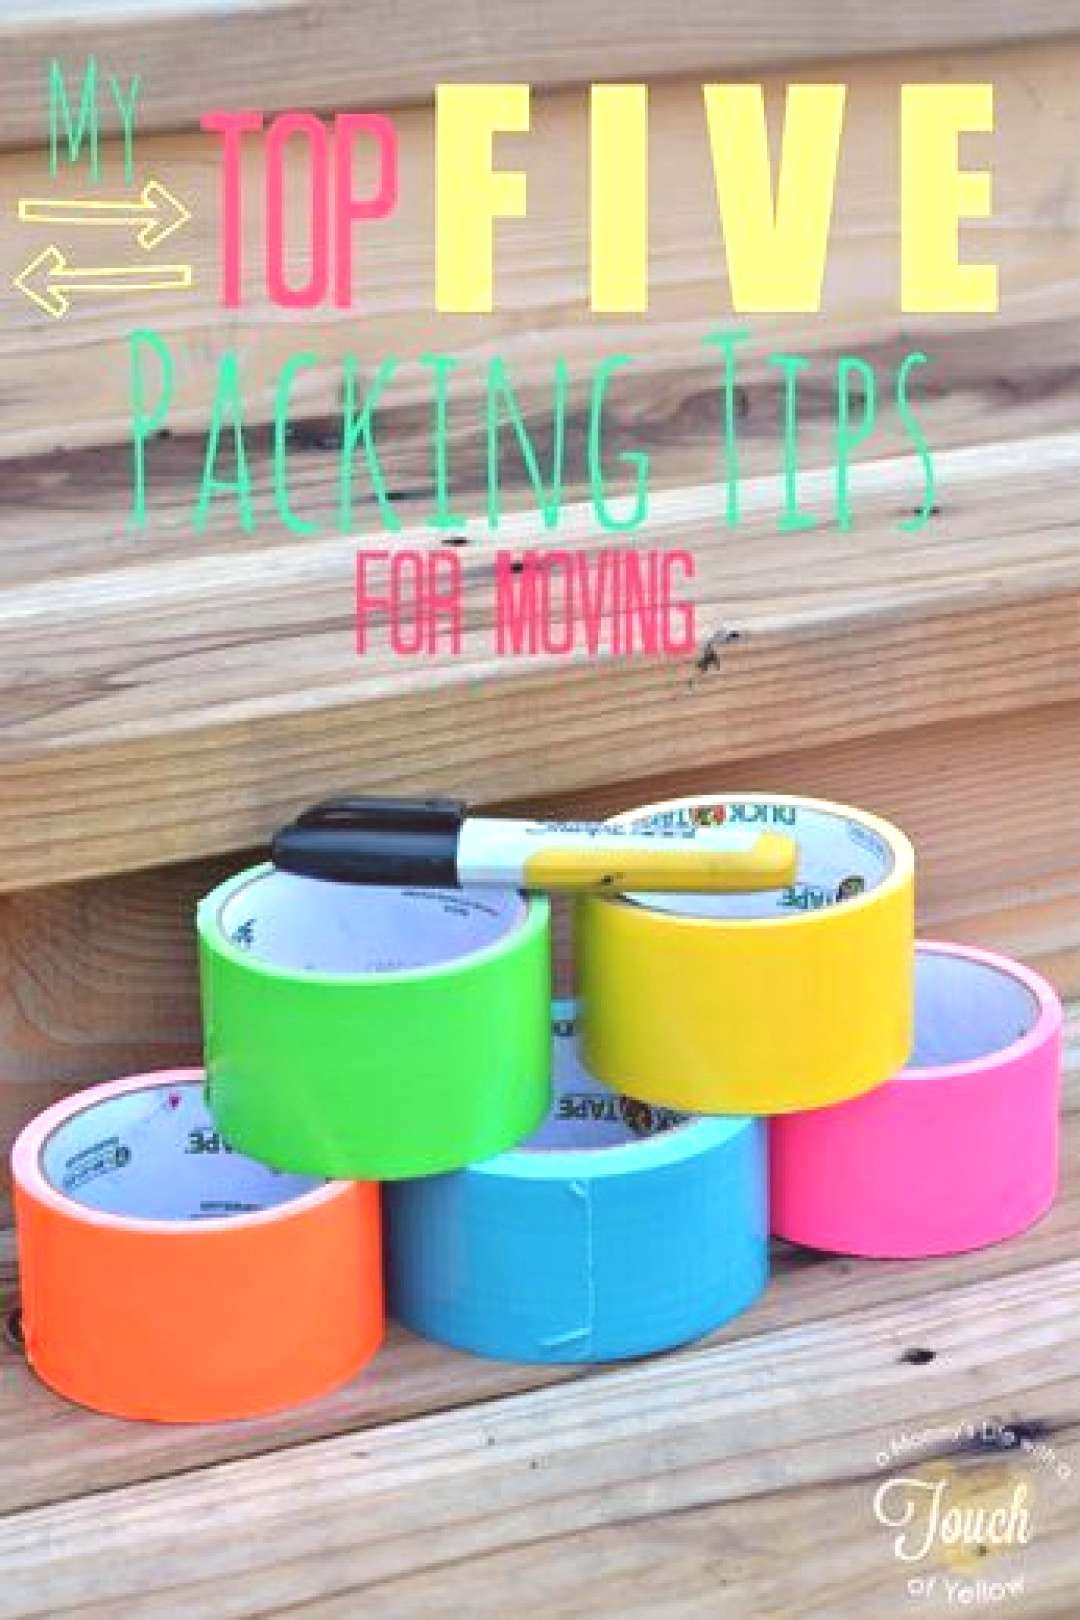 A mommys life...with a touch of YELLOW My Top FIVE packing tips for moving